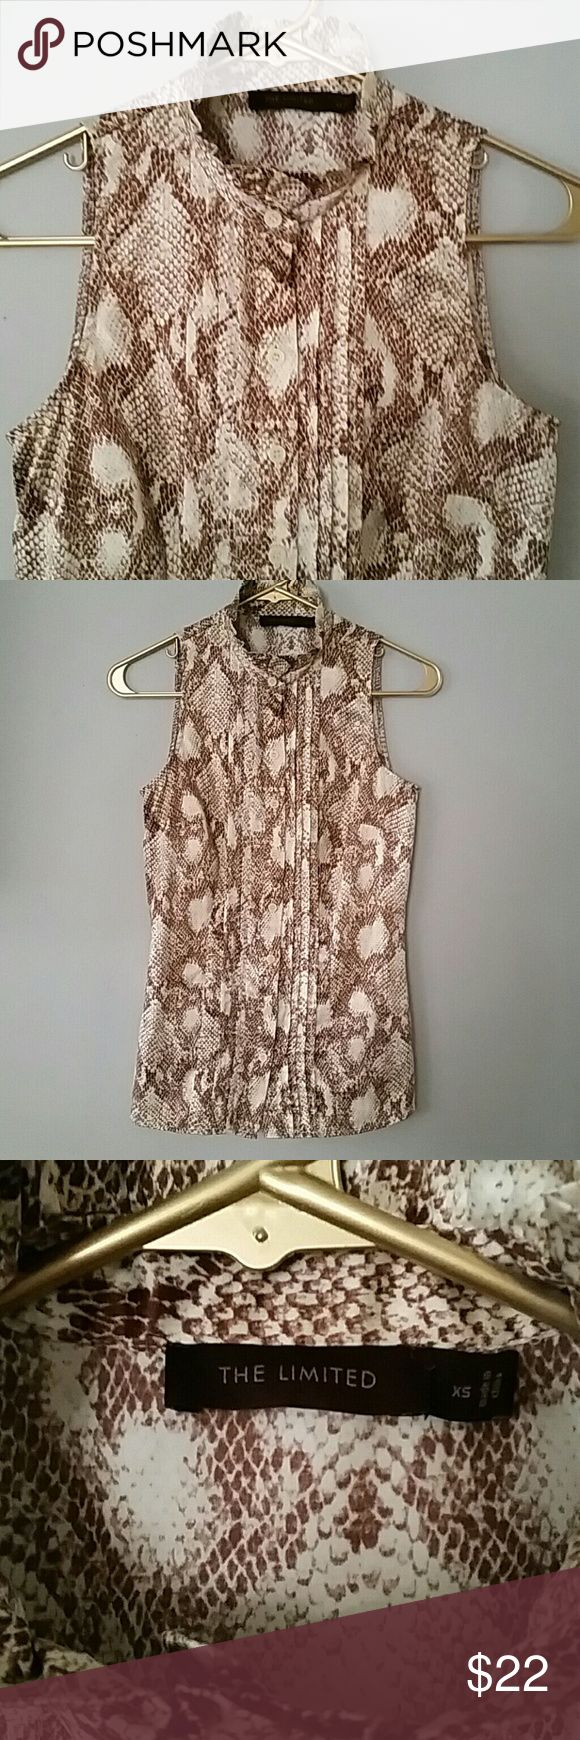 The Limited snakeskin top Sleeveless button down silky blouse The Limited Tops Button Down Shirts